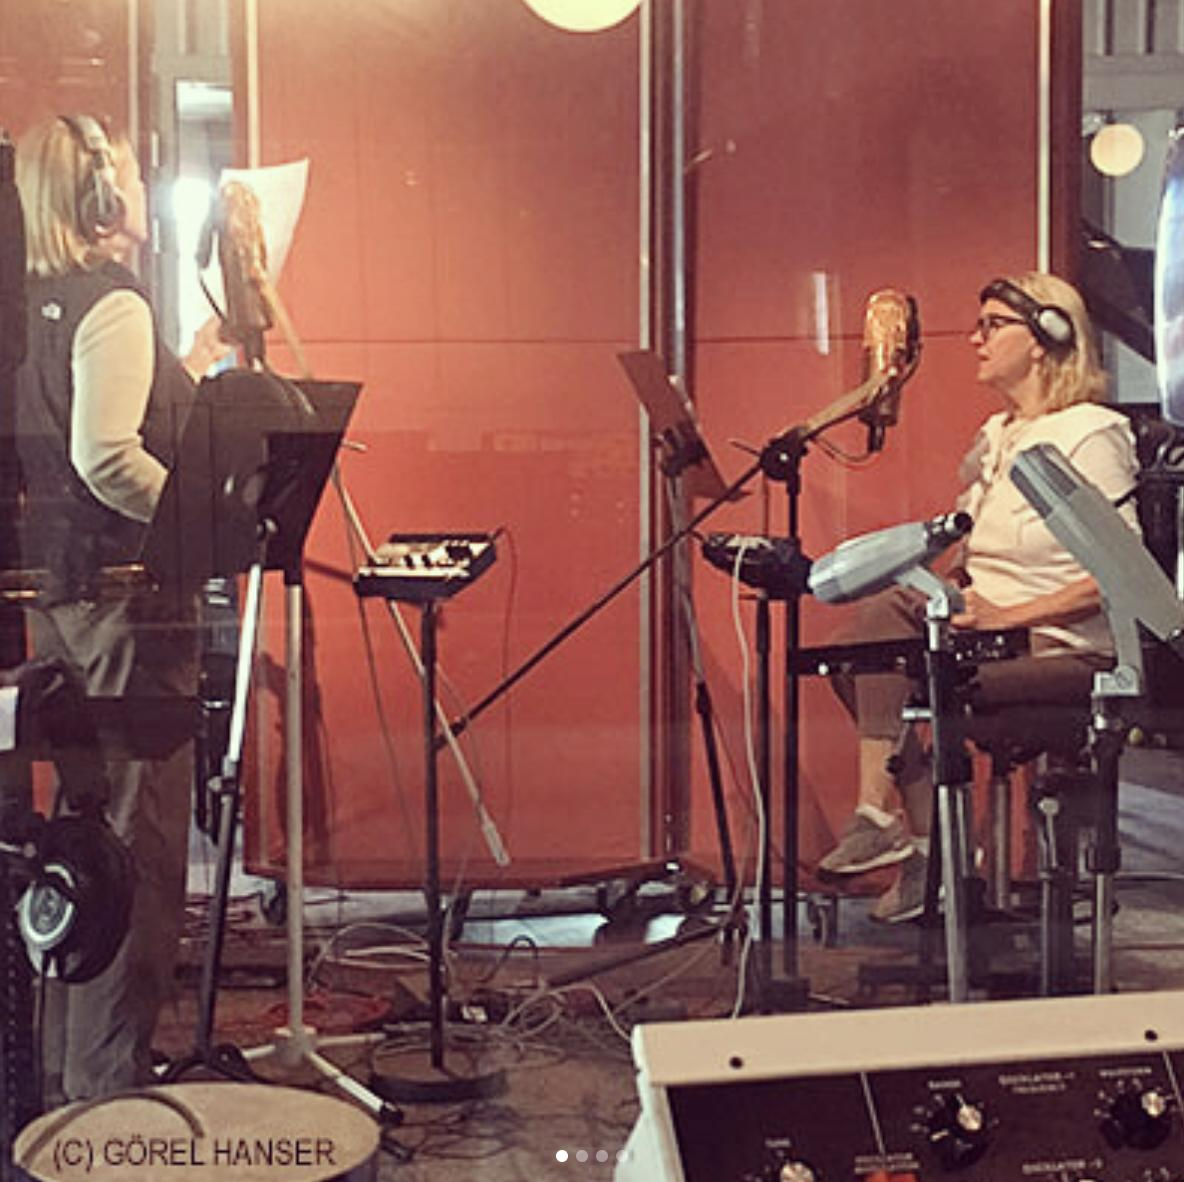 ABBA recording session